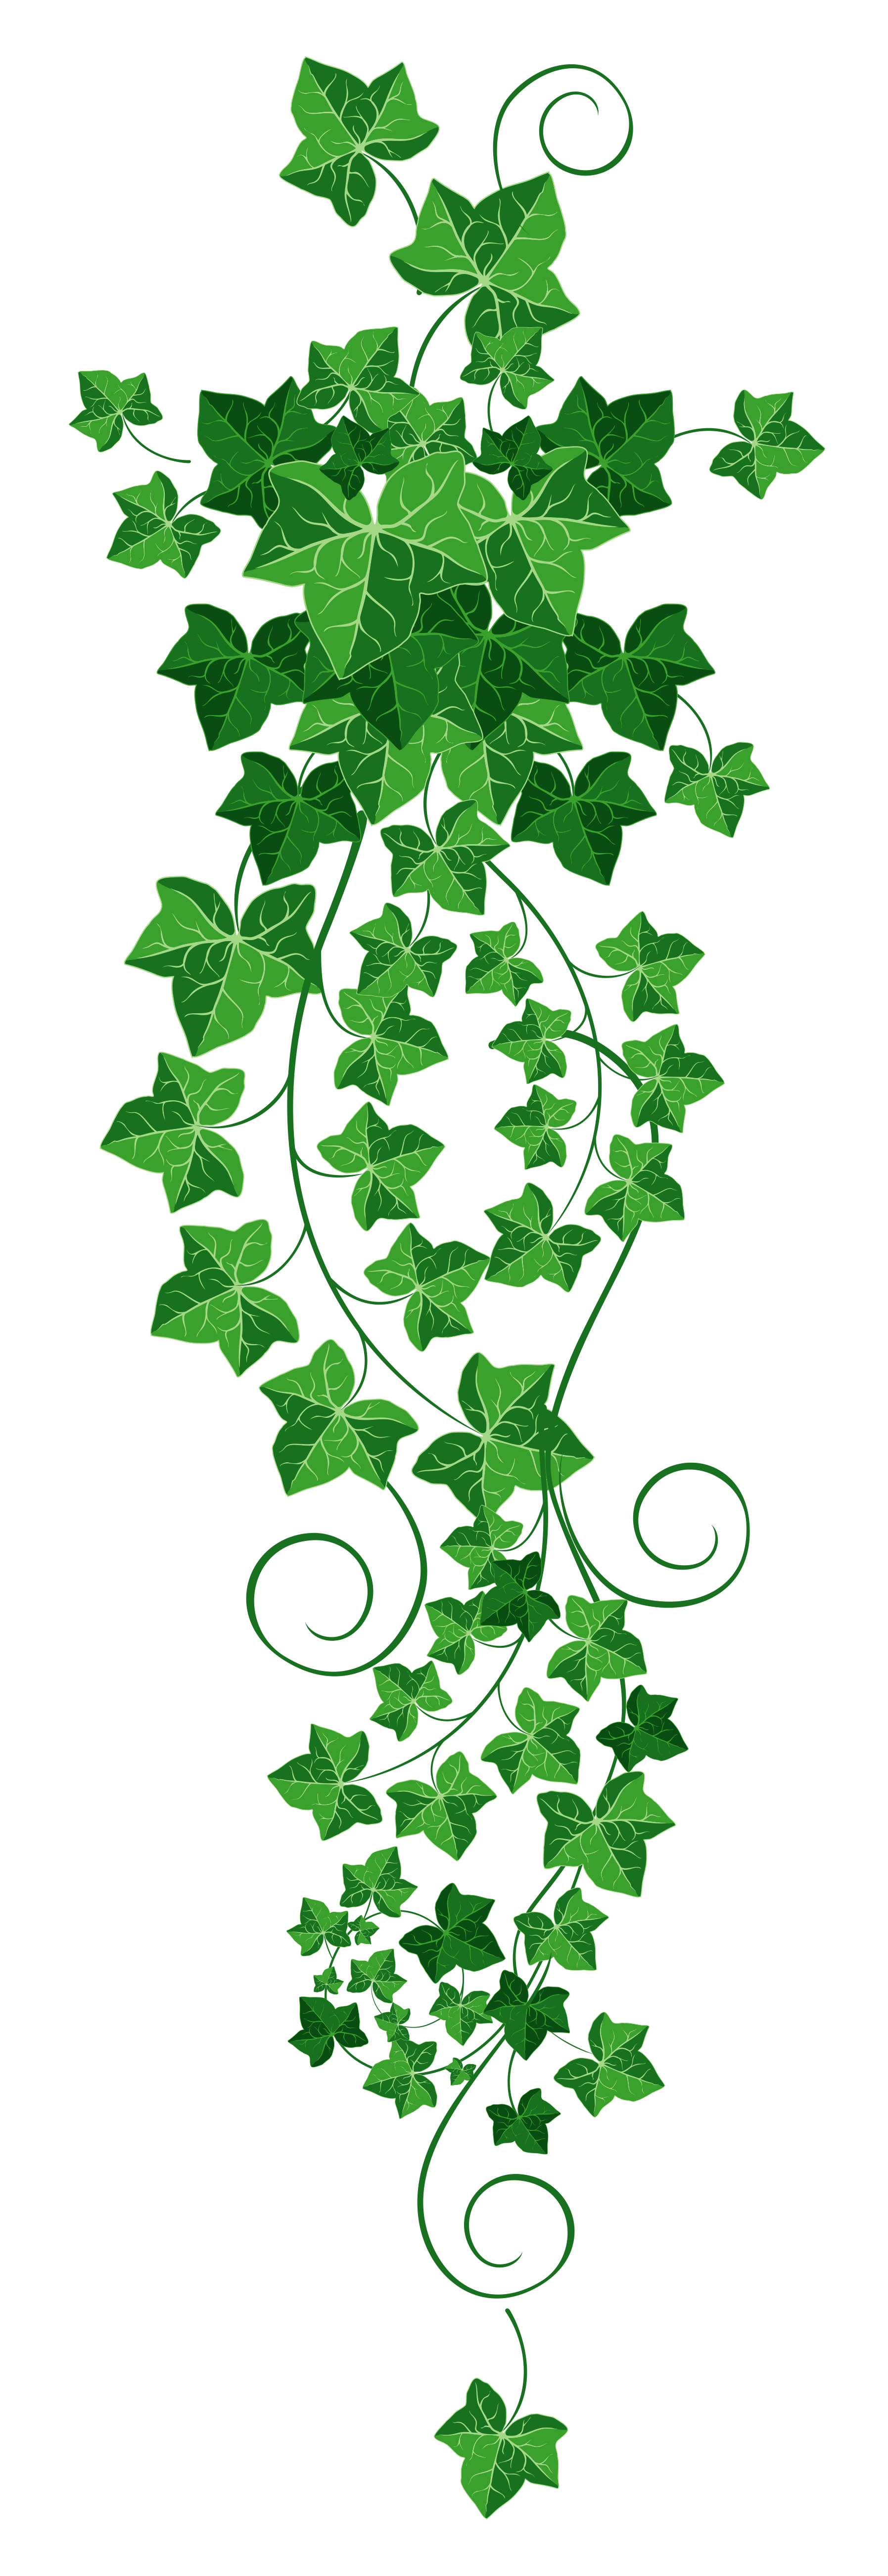 Tree clipart vine. Ivy png picture h